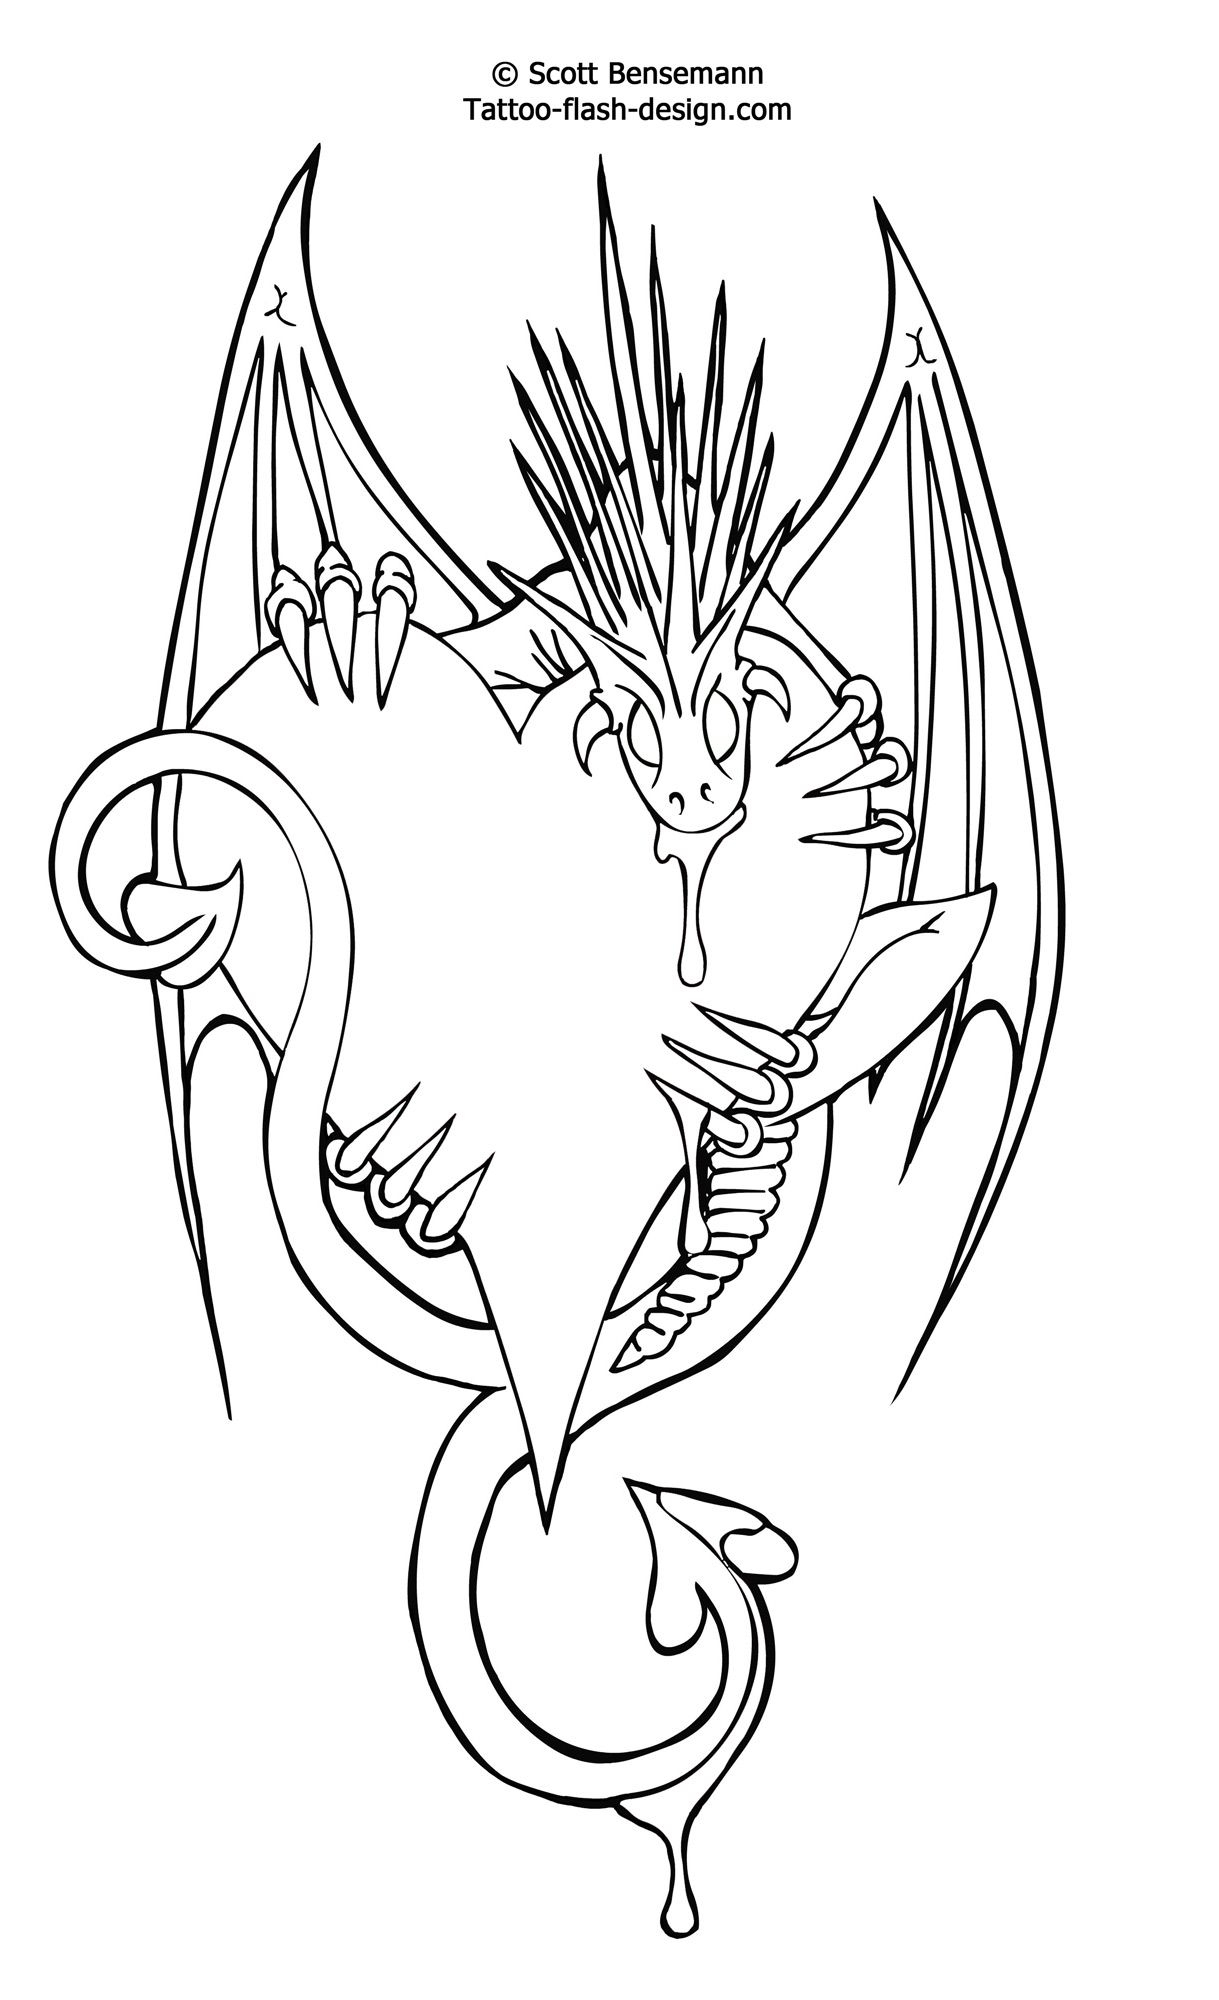 Free Tattoo Flash Love Heart Dragon Design Printable Castle B Day On - Free Printable Flash Tattoo